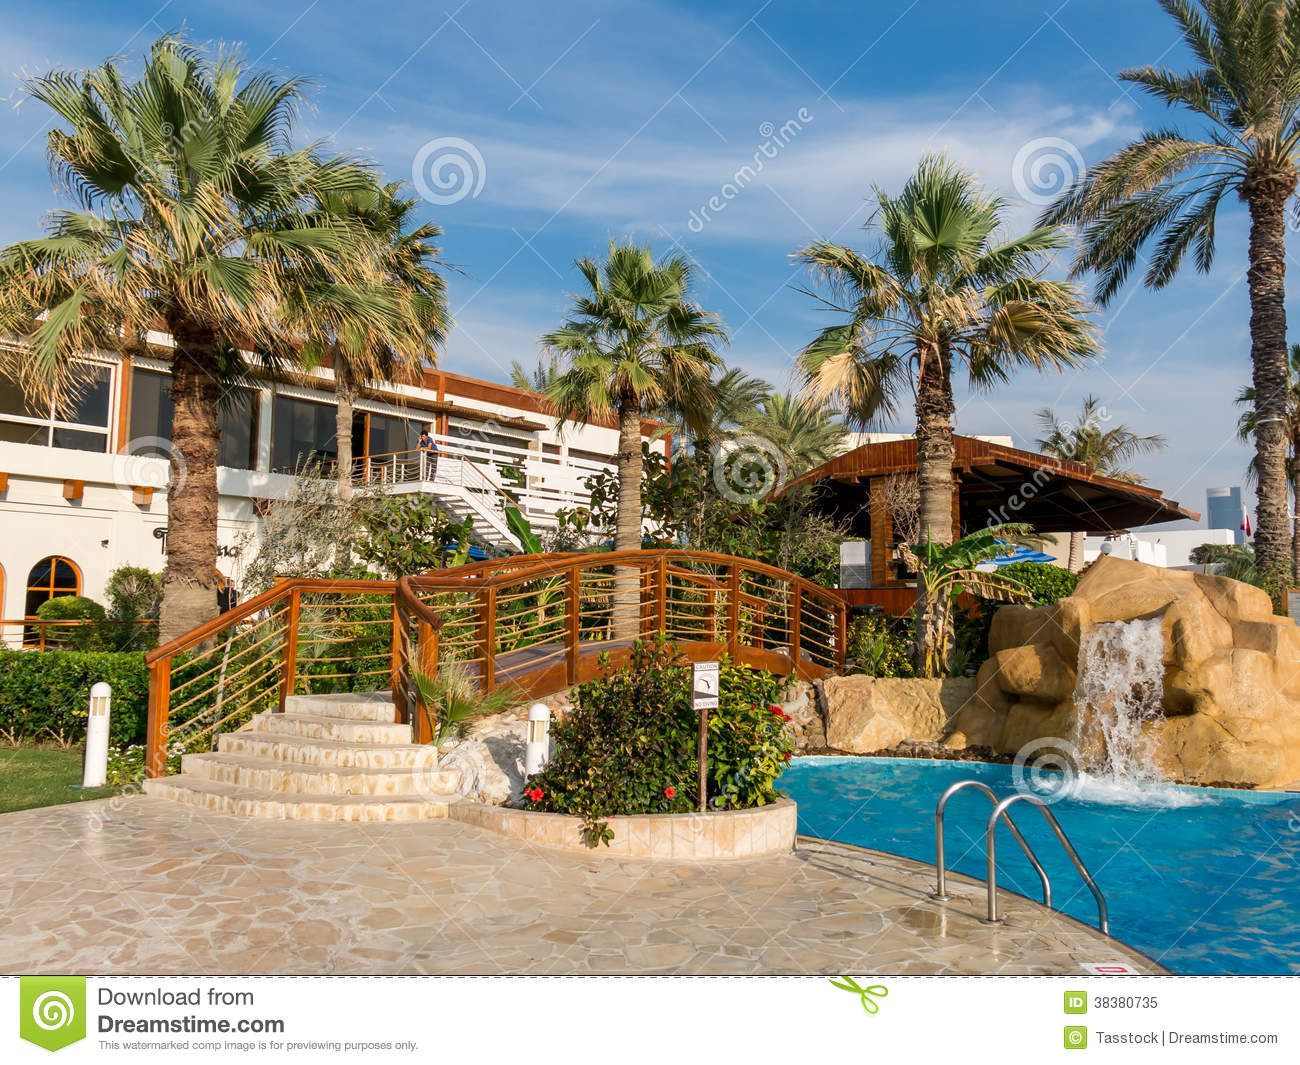 Garden of hotel resort in dubai editorial image image for Garden pool dubai